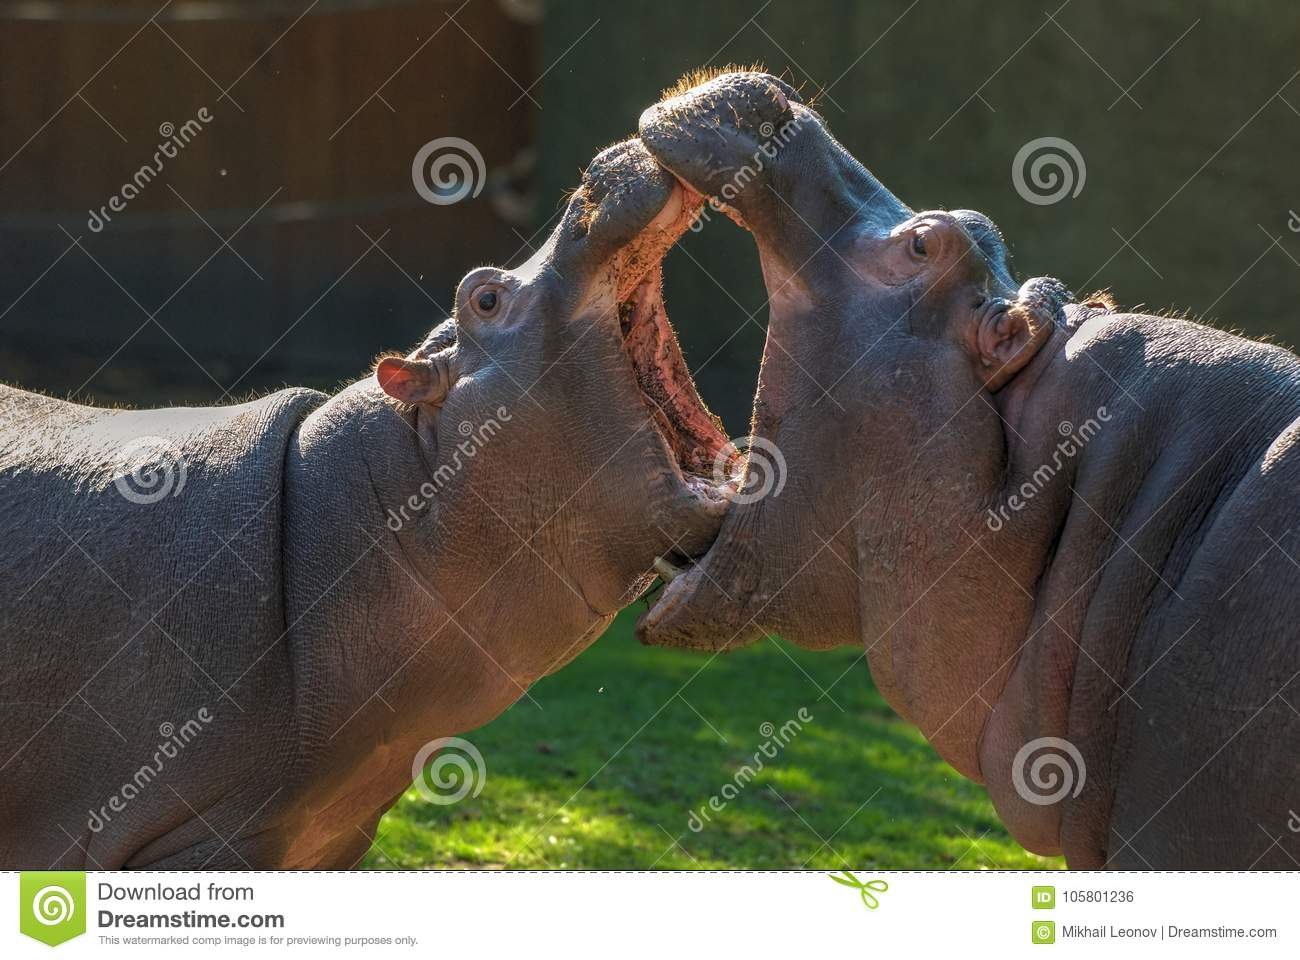 Twohippopotamuses with open mouths whose mouth is bigger. Small hippopotamuses fight. Animal care. Funny vegetarian wild animals